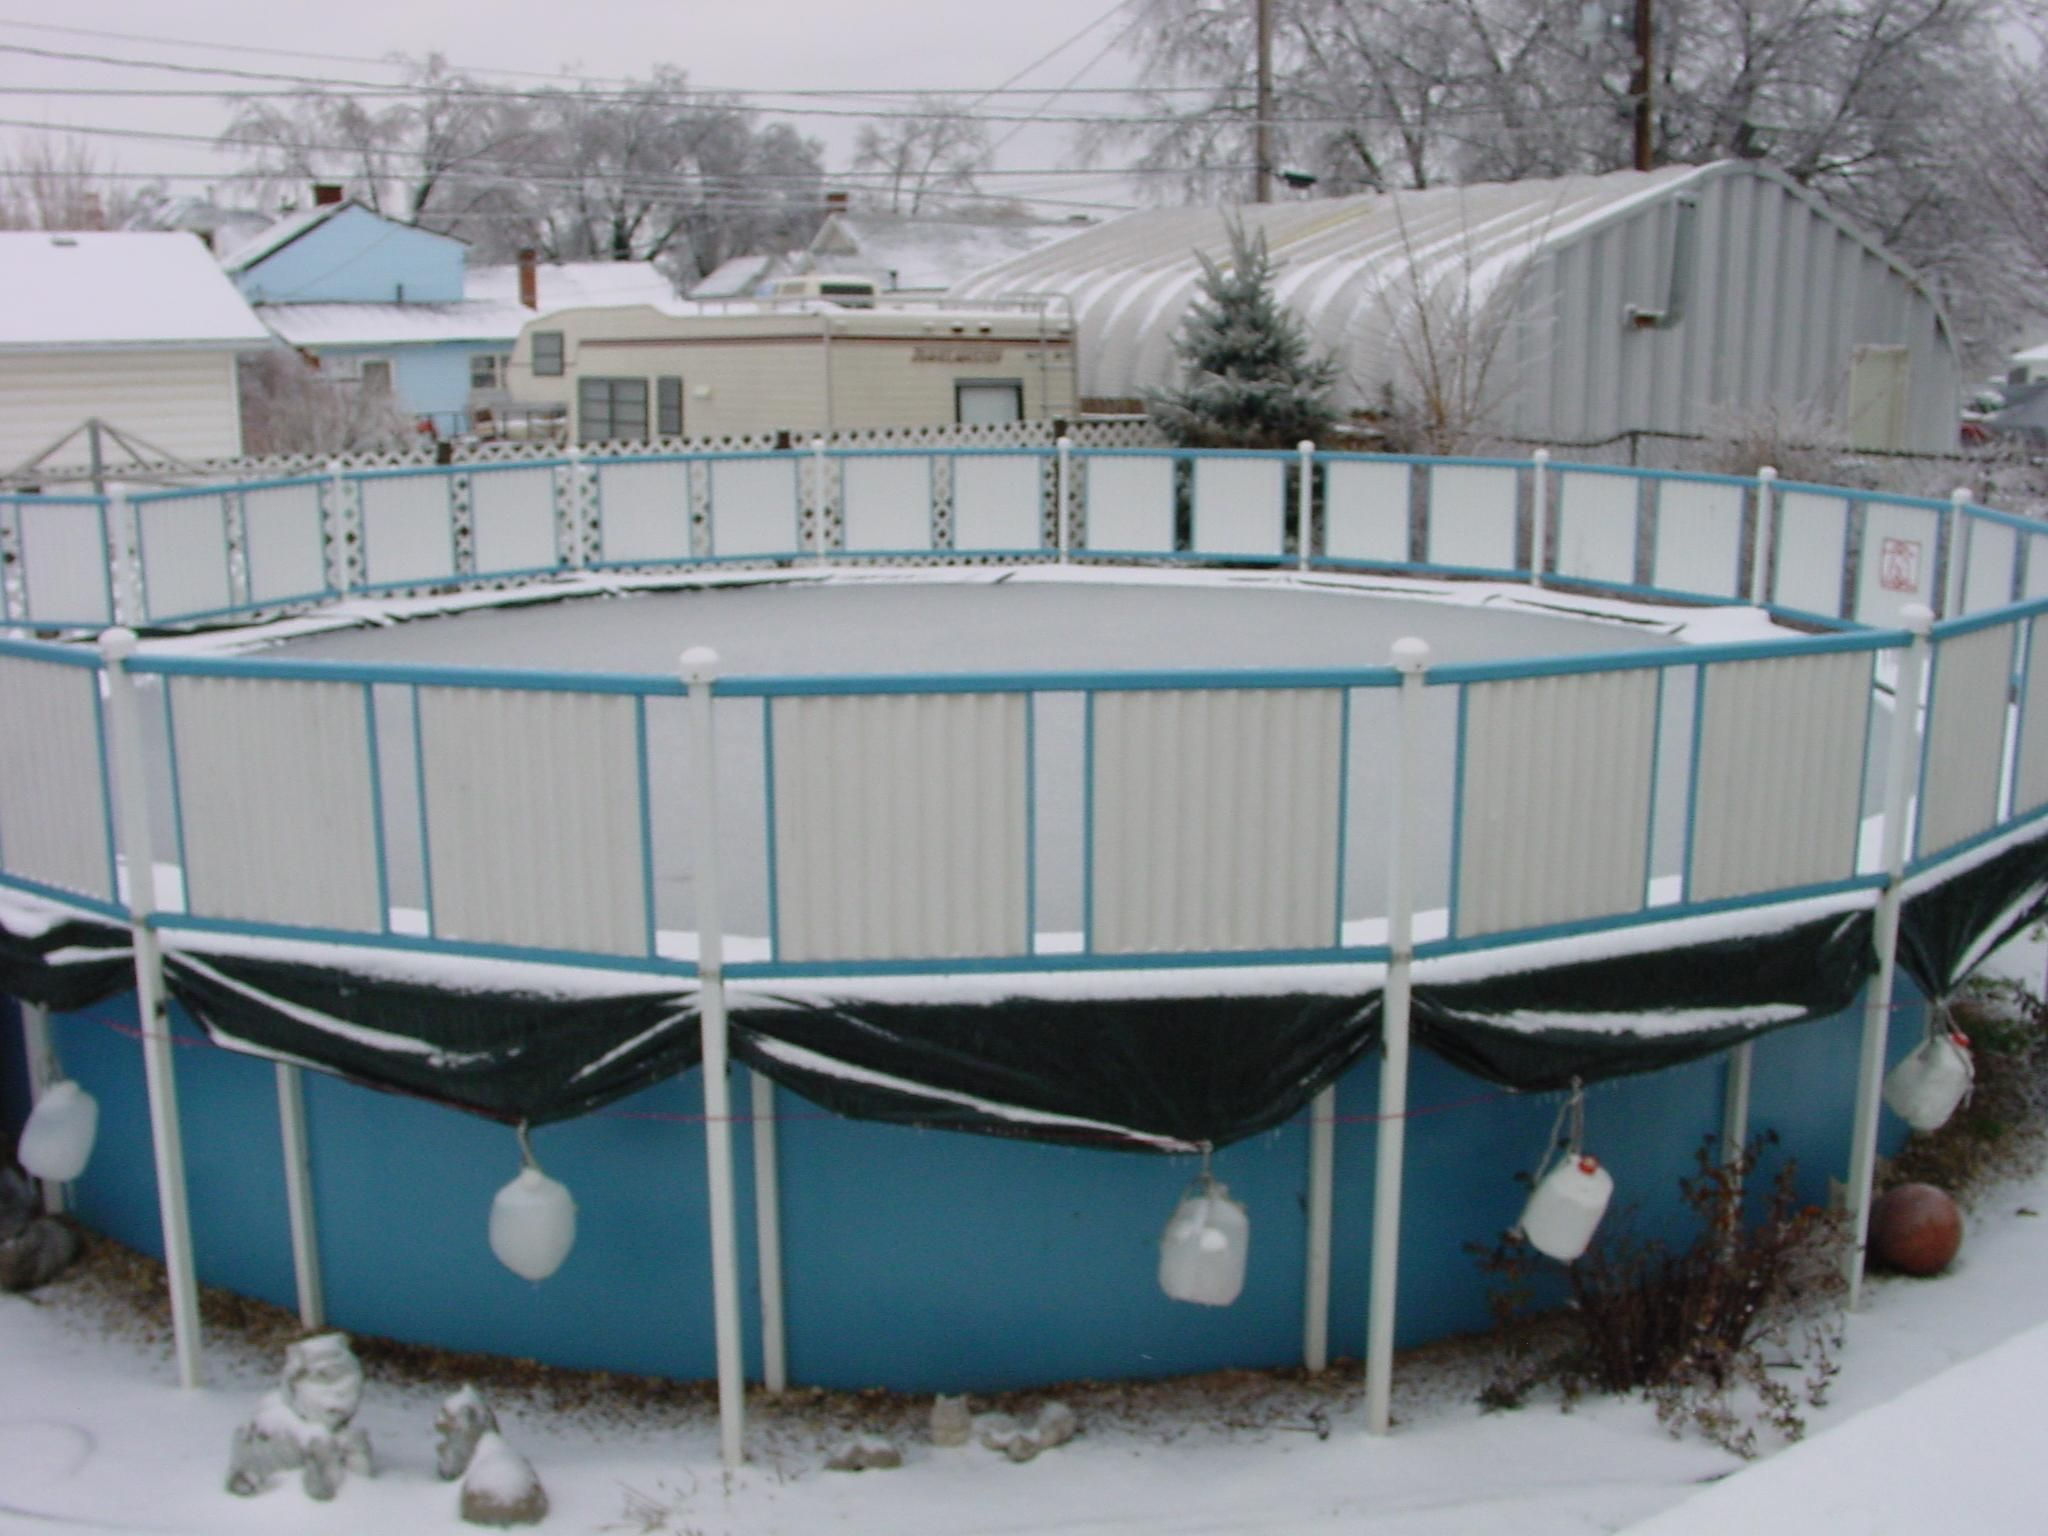 Are Pool Fence Rules Different For Glass Fences